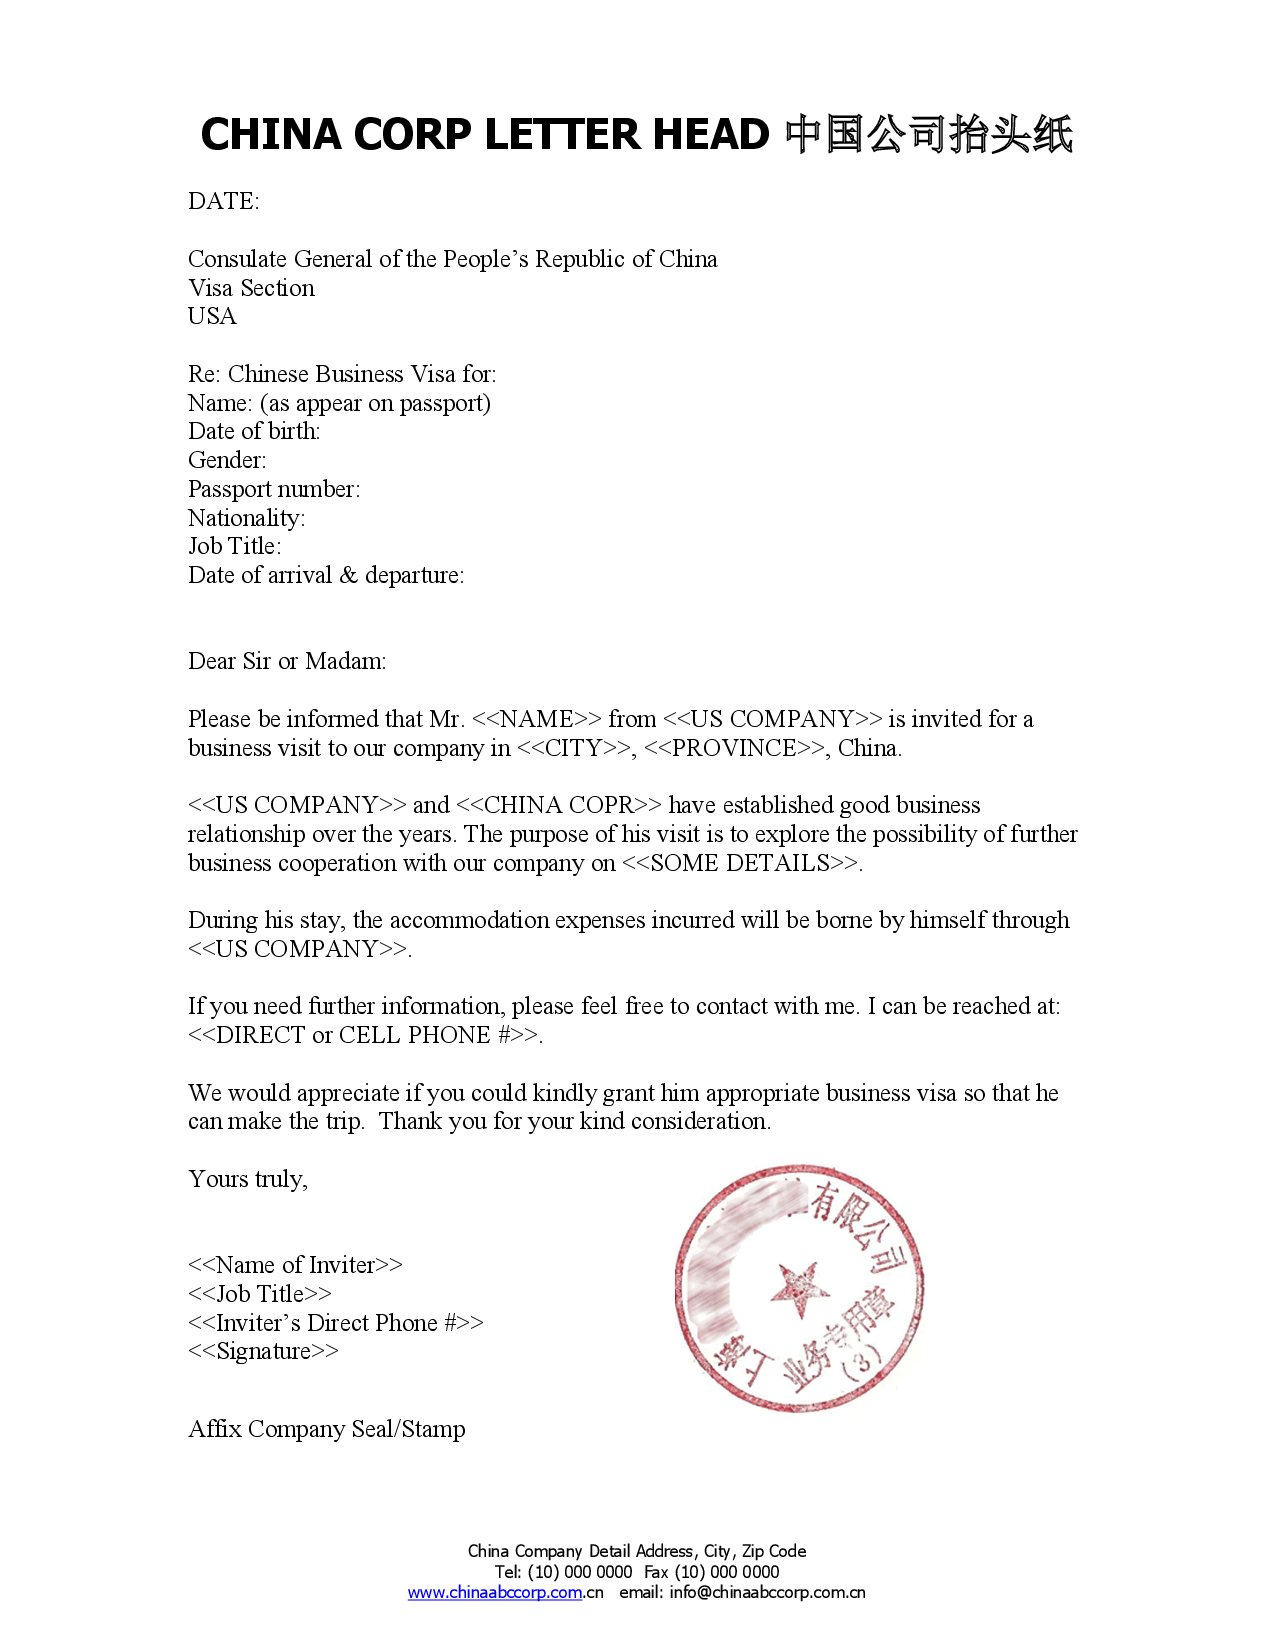 Format invitation letter for business visa to china lettervisa format invitation letter for business visa to china lettervisa invitation letter application letter sample stopboris Gallery